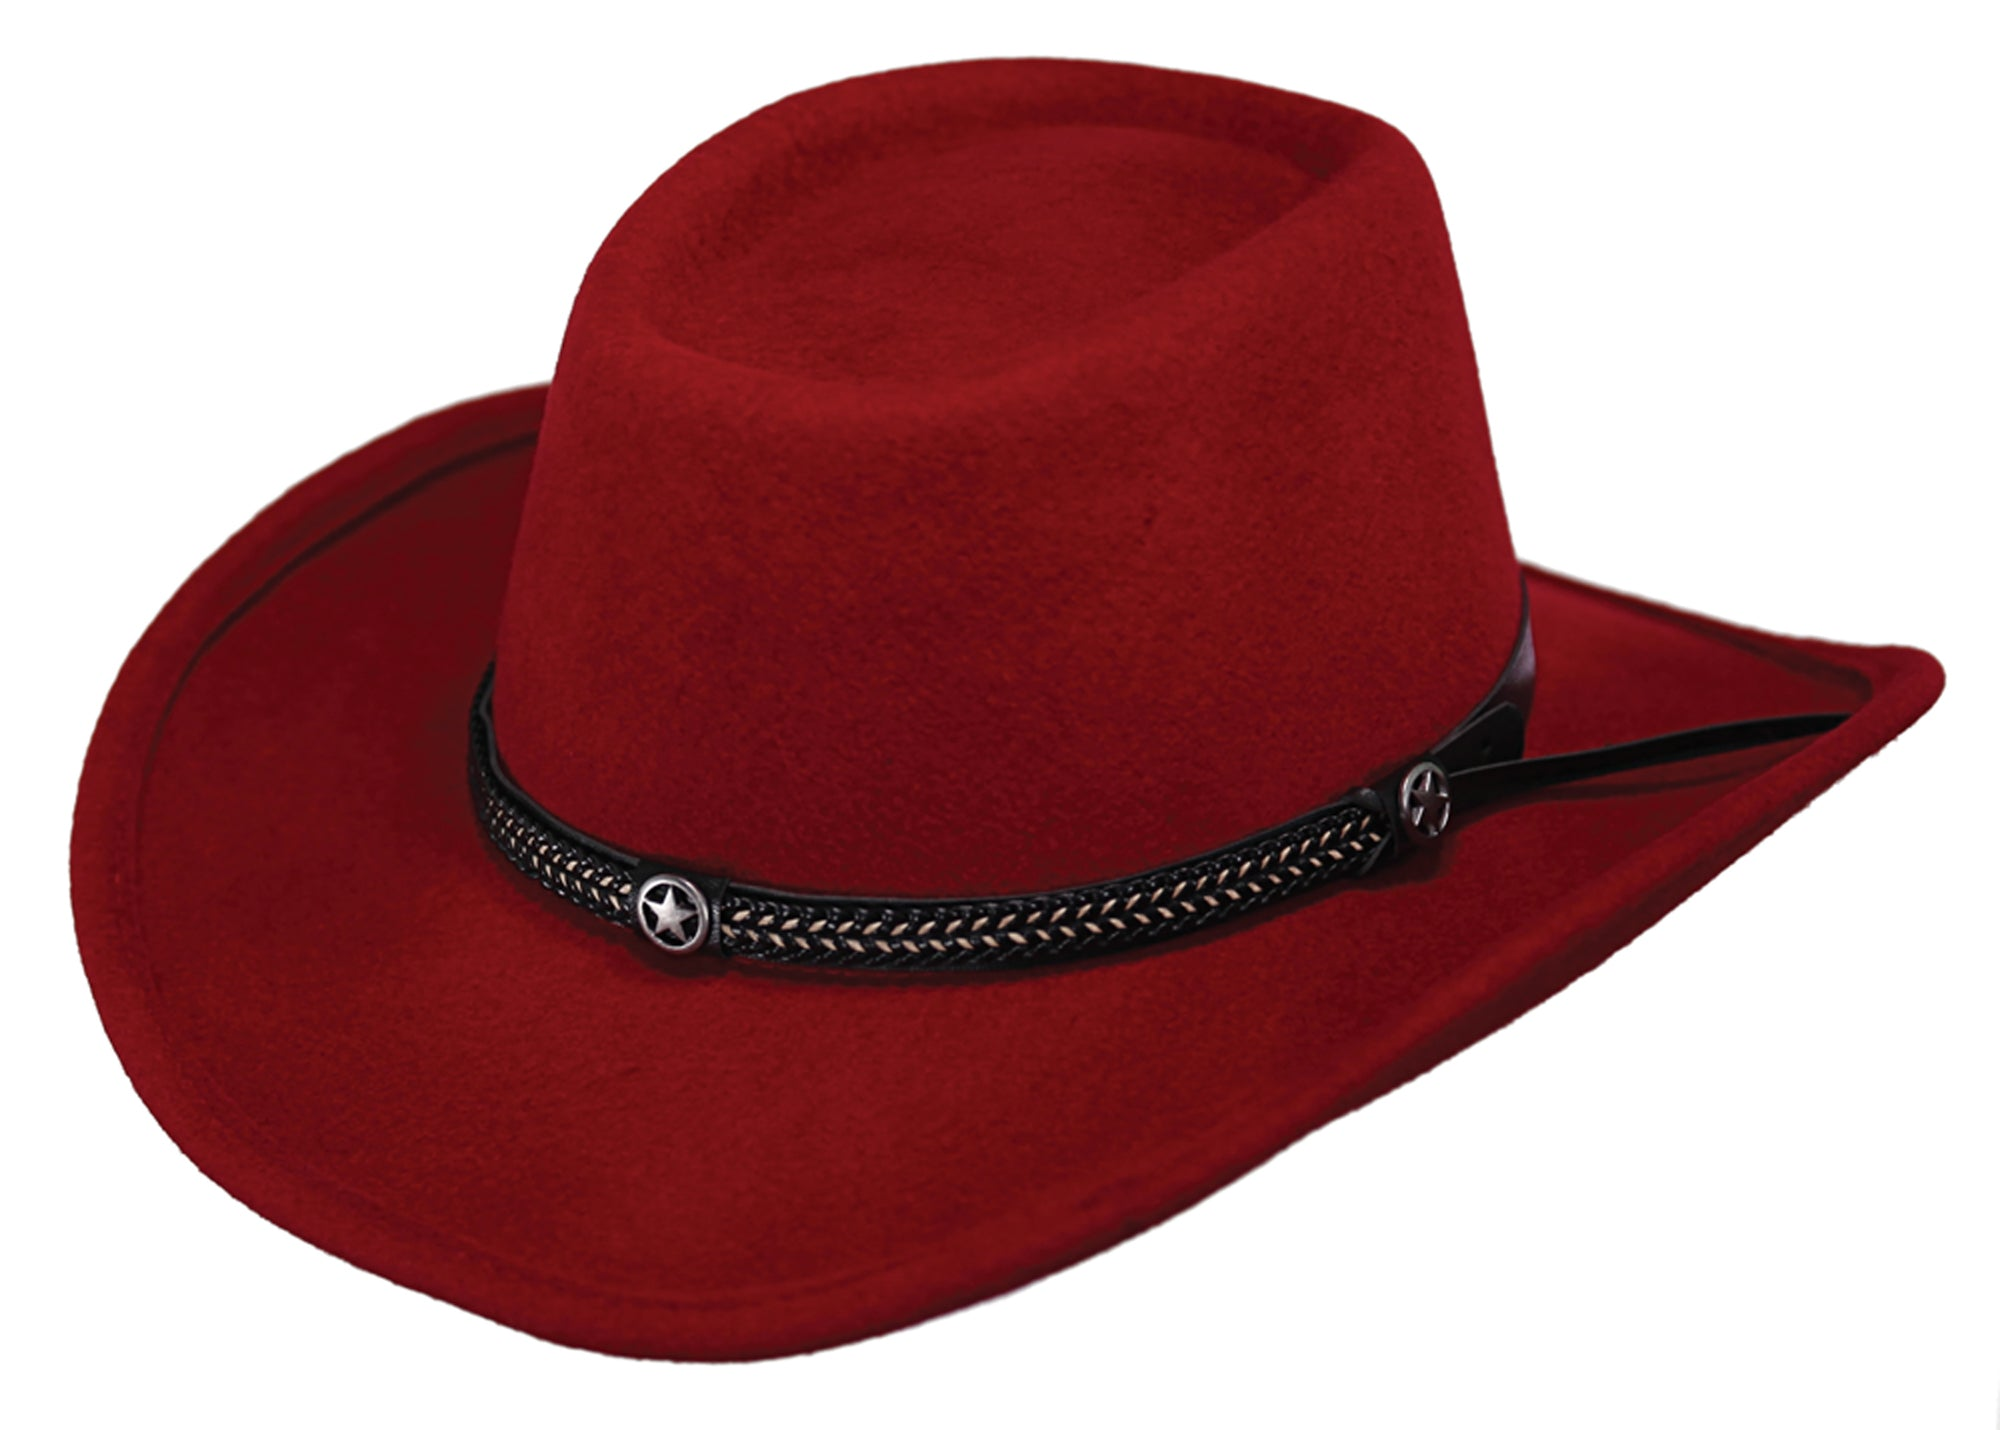 Outback Trading Co. Durango Mens Hat Red Australian Wool UPF50 – The ... dfbd4977c79